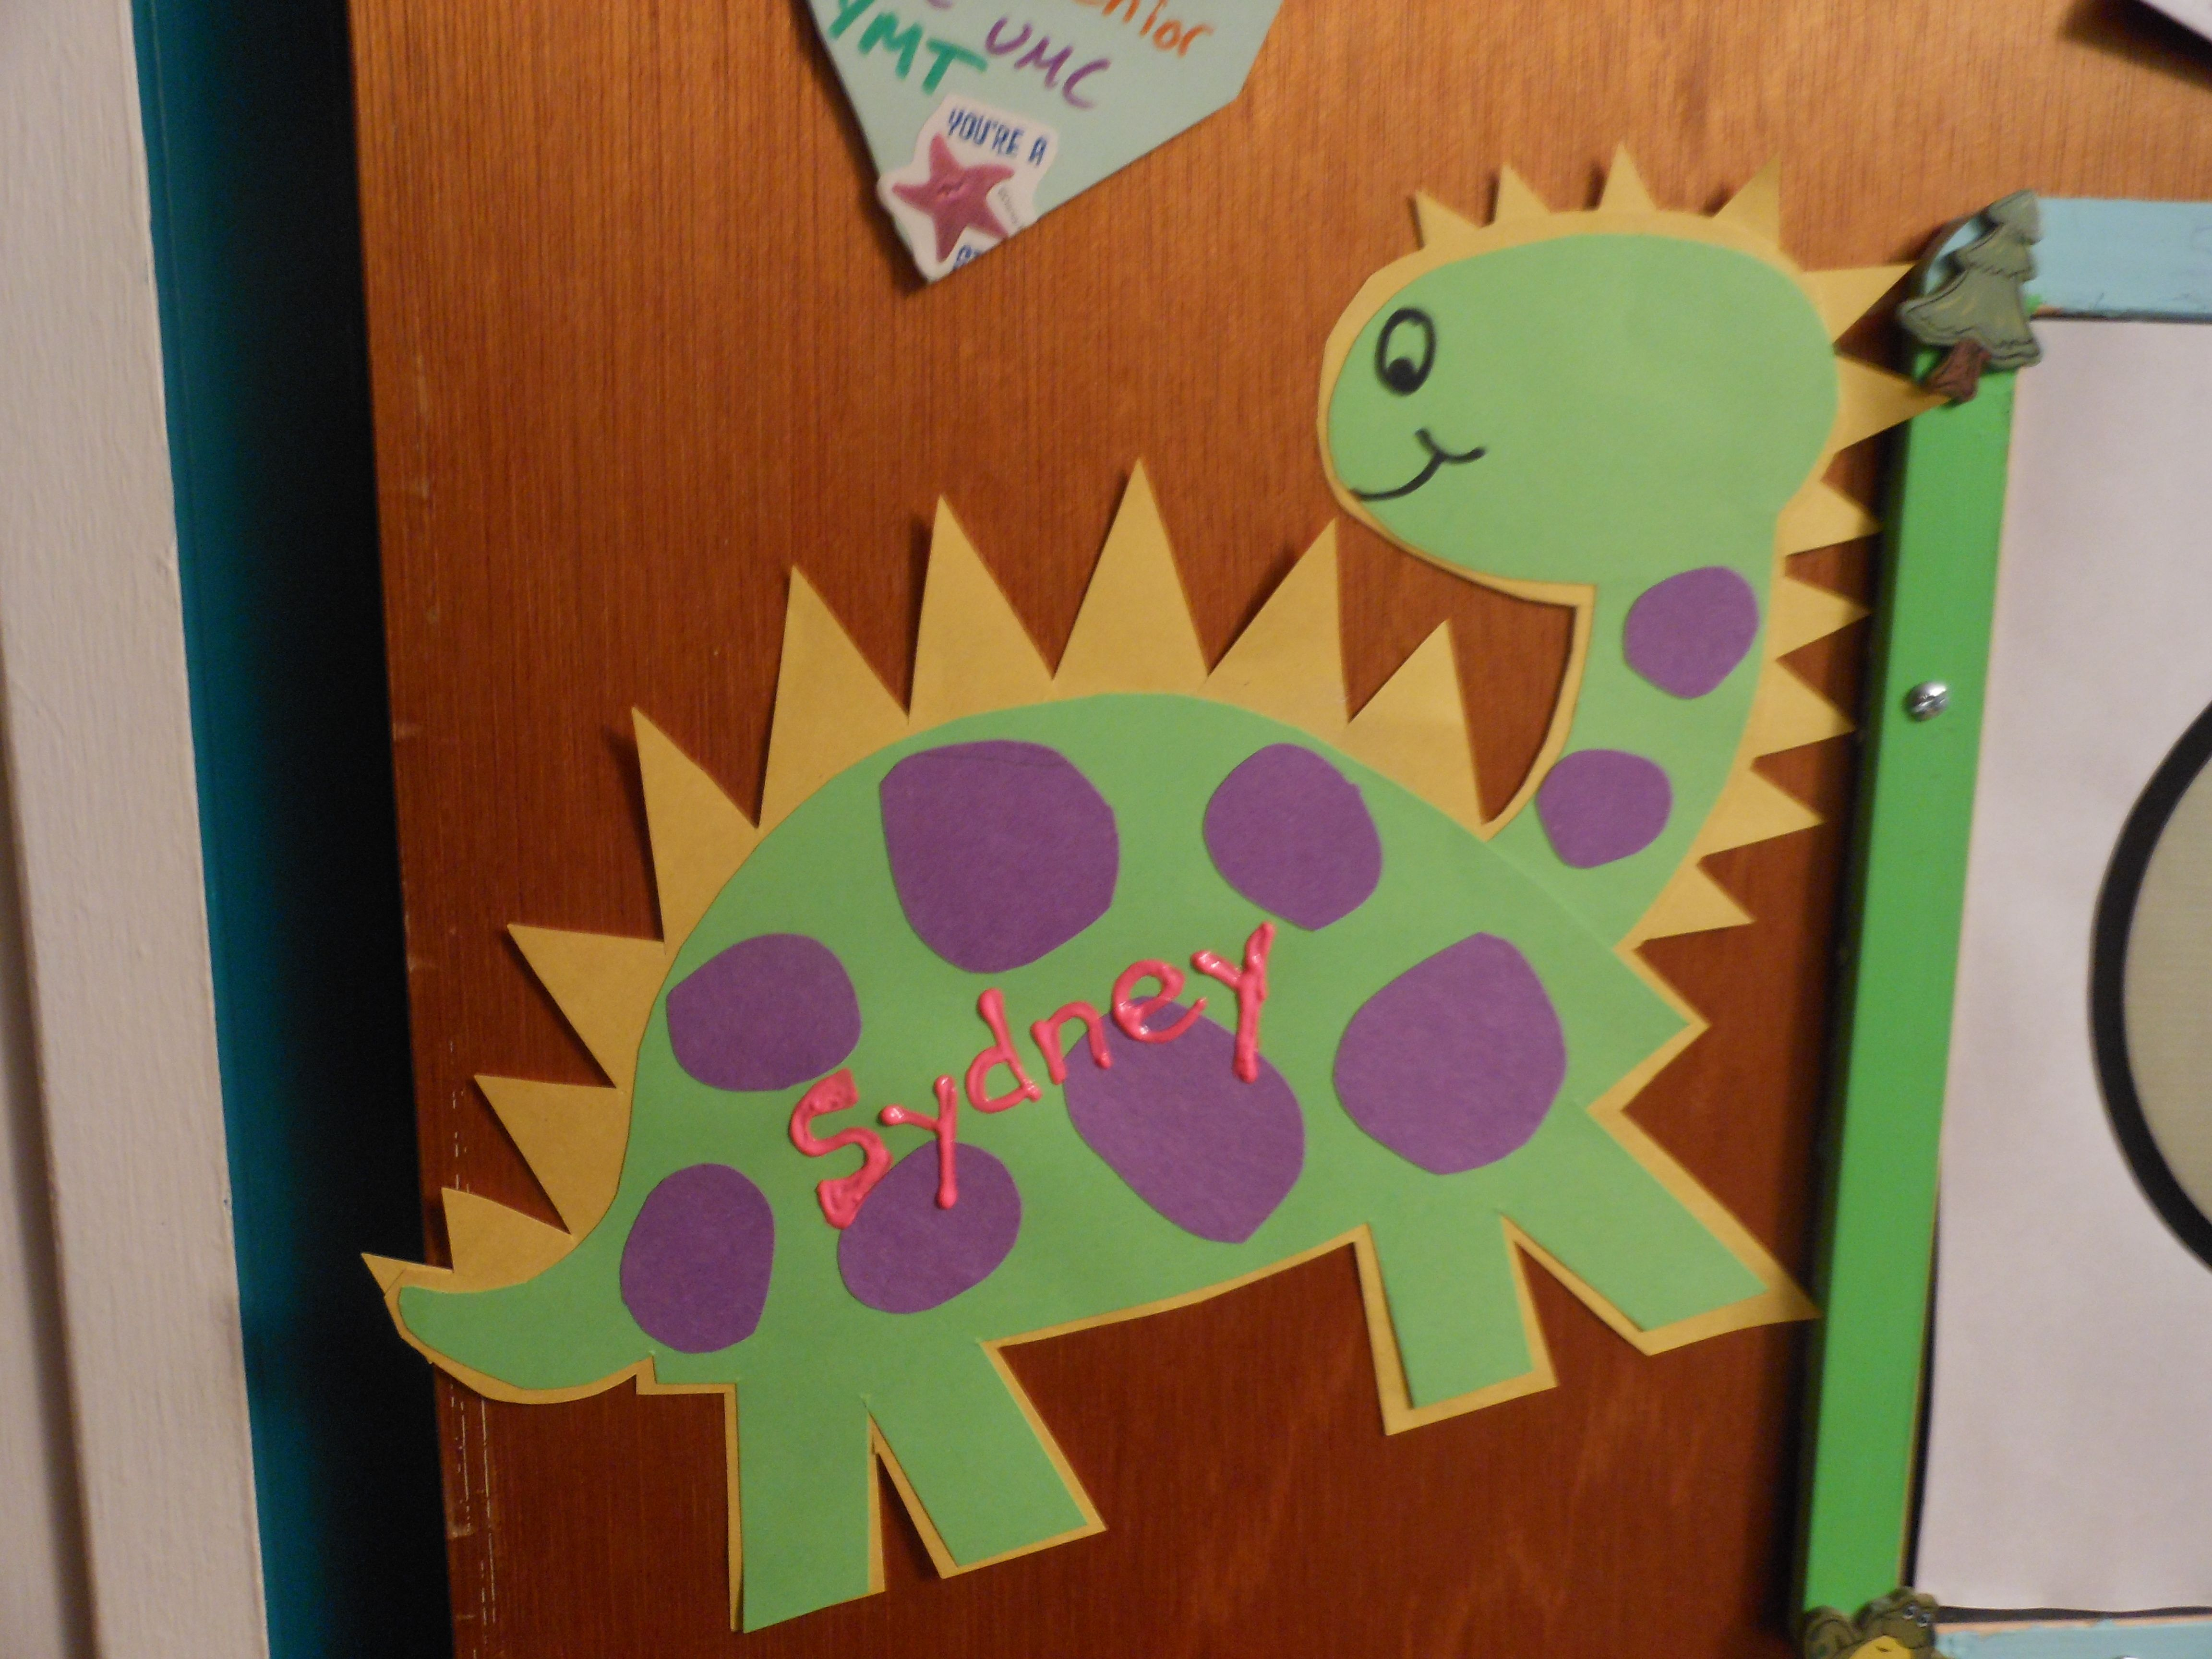 A dinosaur door dec I made based off something I found on Pinterest. Turned out well!